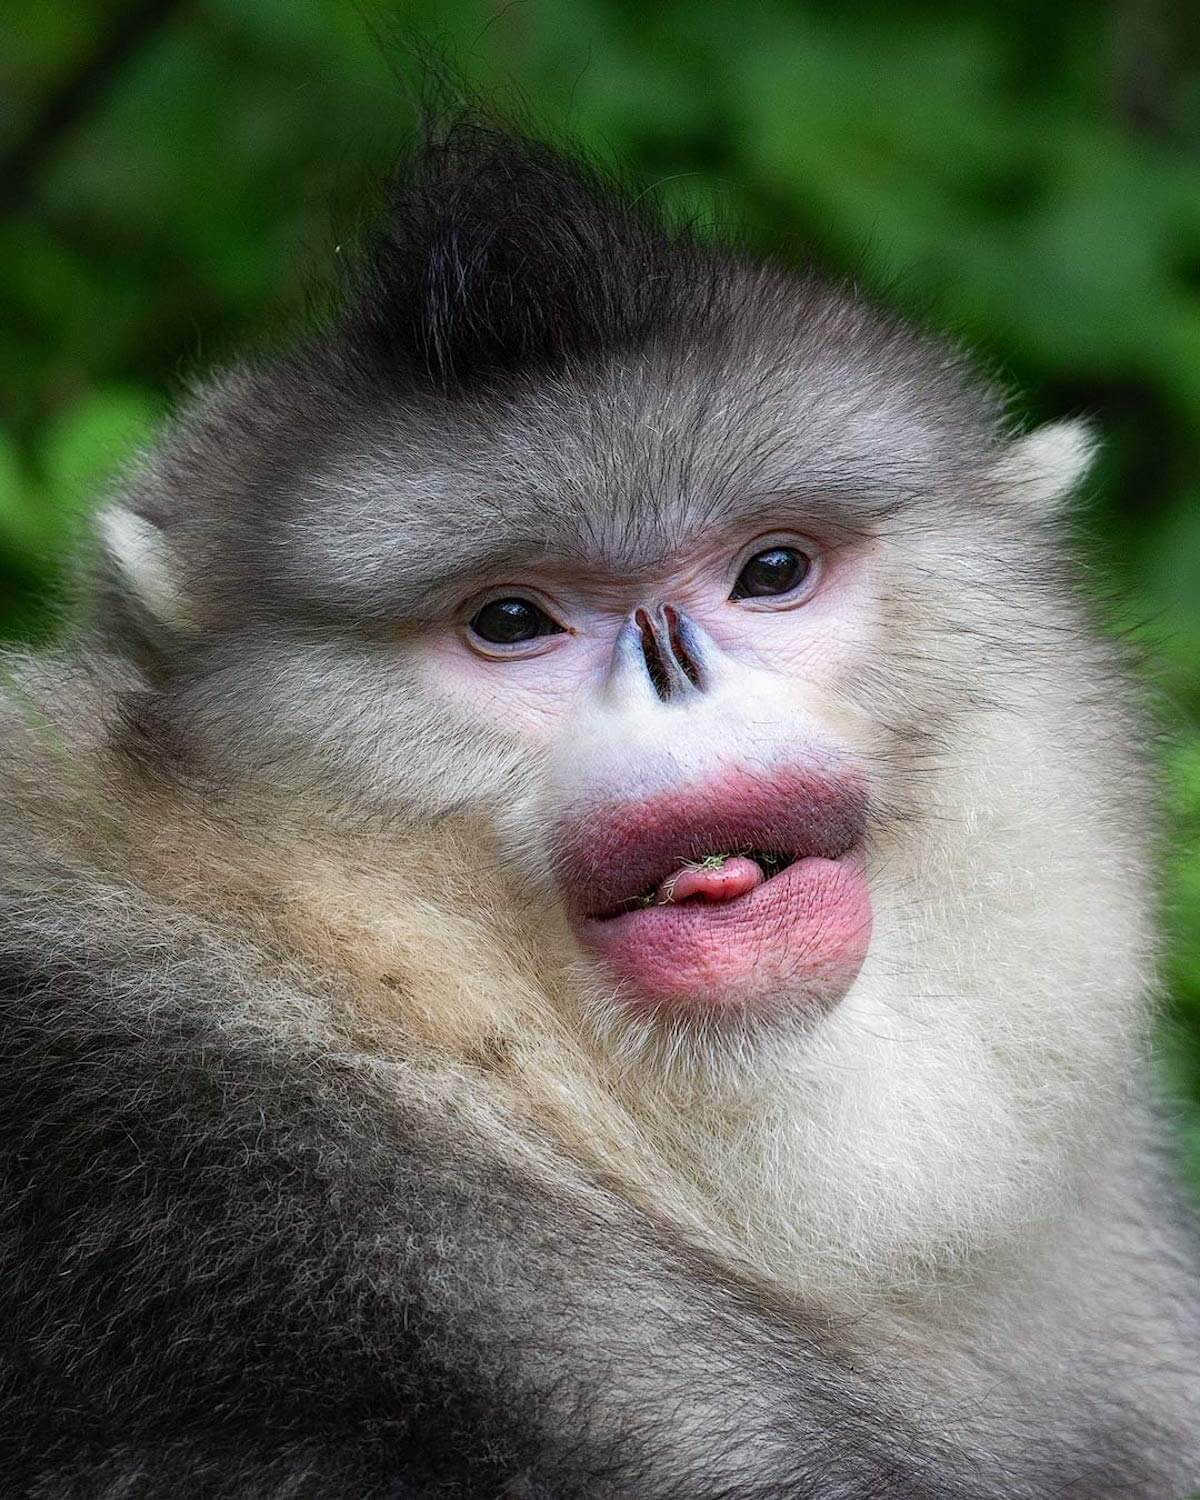 Human-Like Micro-Expressions Of Endangered Animals Across The World (Interview)